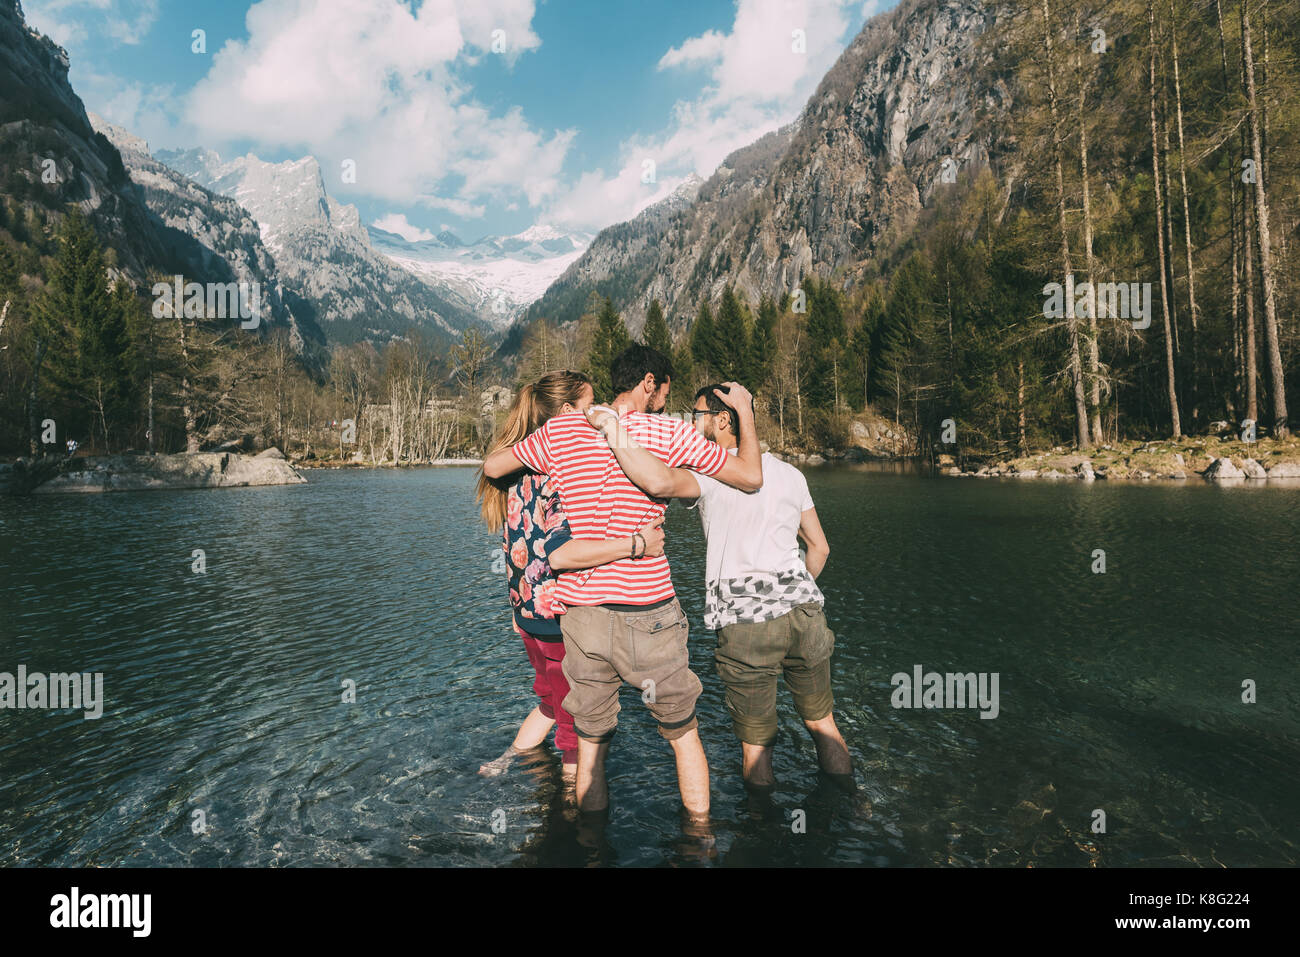 Rear view of three young adult friends ankle deep in mountain lake, Lombardy, Italy - Stock Image